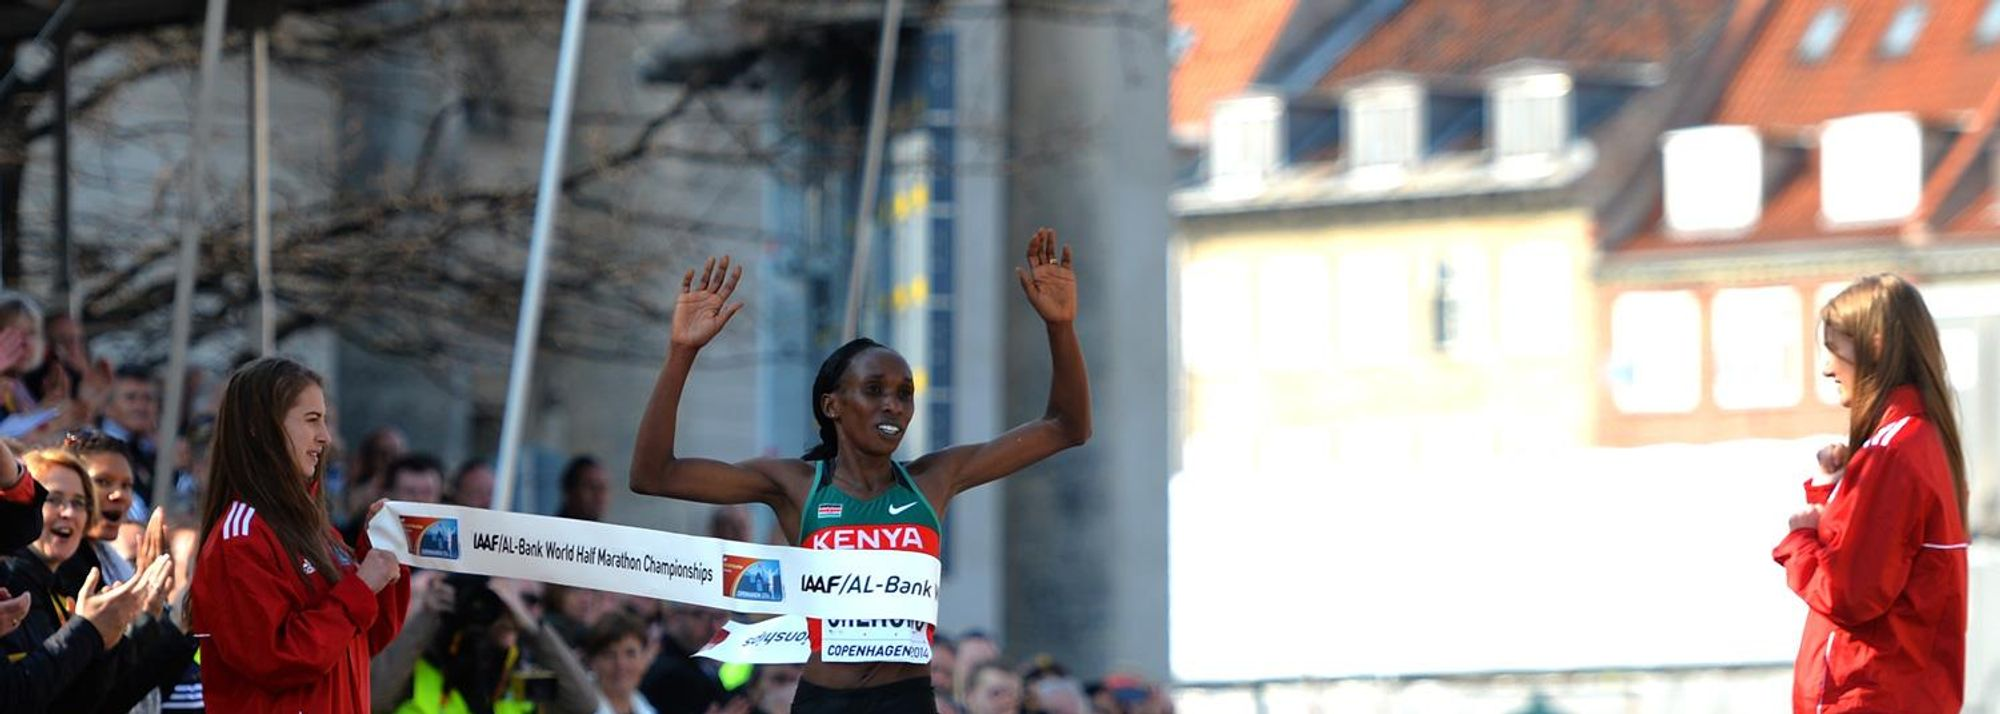 Kenya, as expected, produced a totally dominant performance in the women's race at the 2014 IAAF/AL-Bank World Half Marathon Championships in Copenhagen as they reclaimed individual and team honours from their Ethiopian rivals.